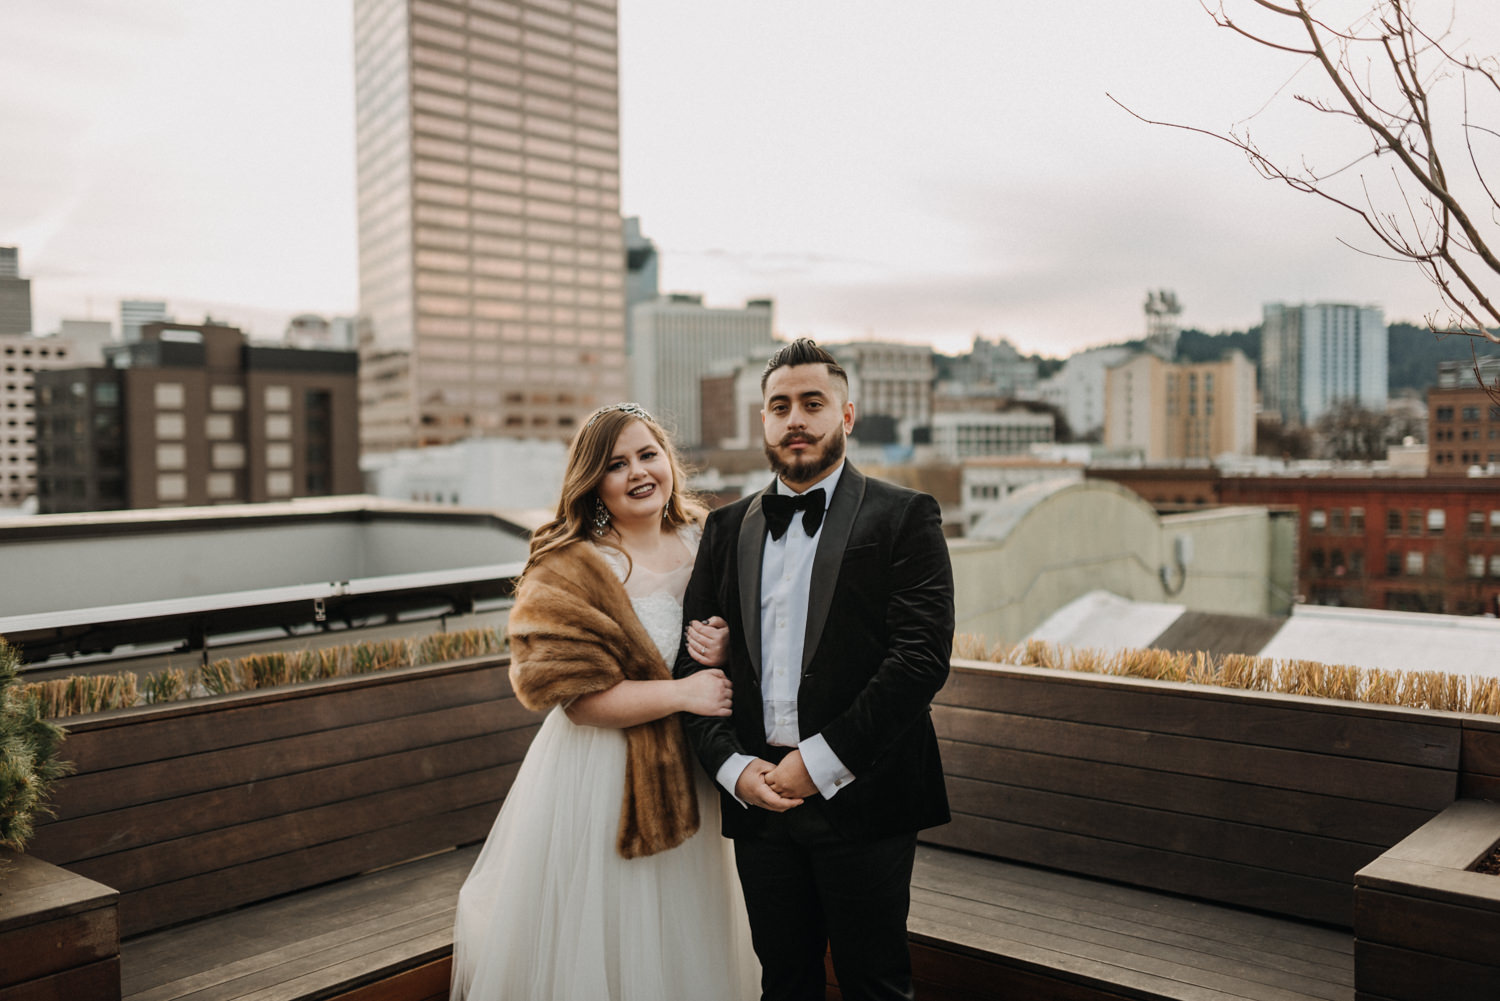 51Portland-Wedding-first-look-society-hotel-downtown.jpg